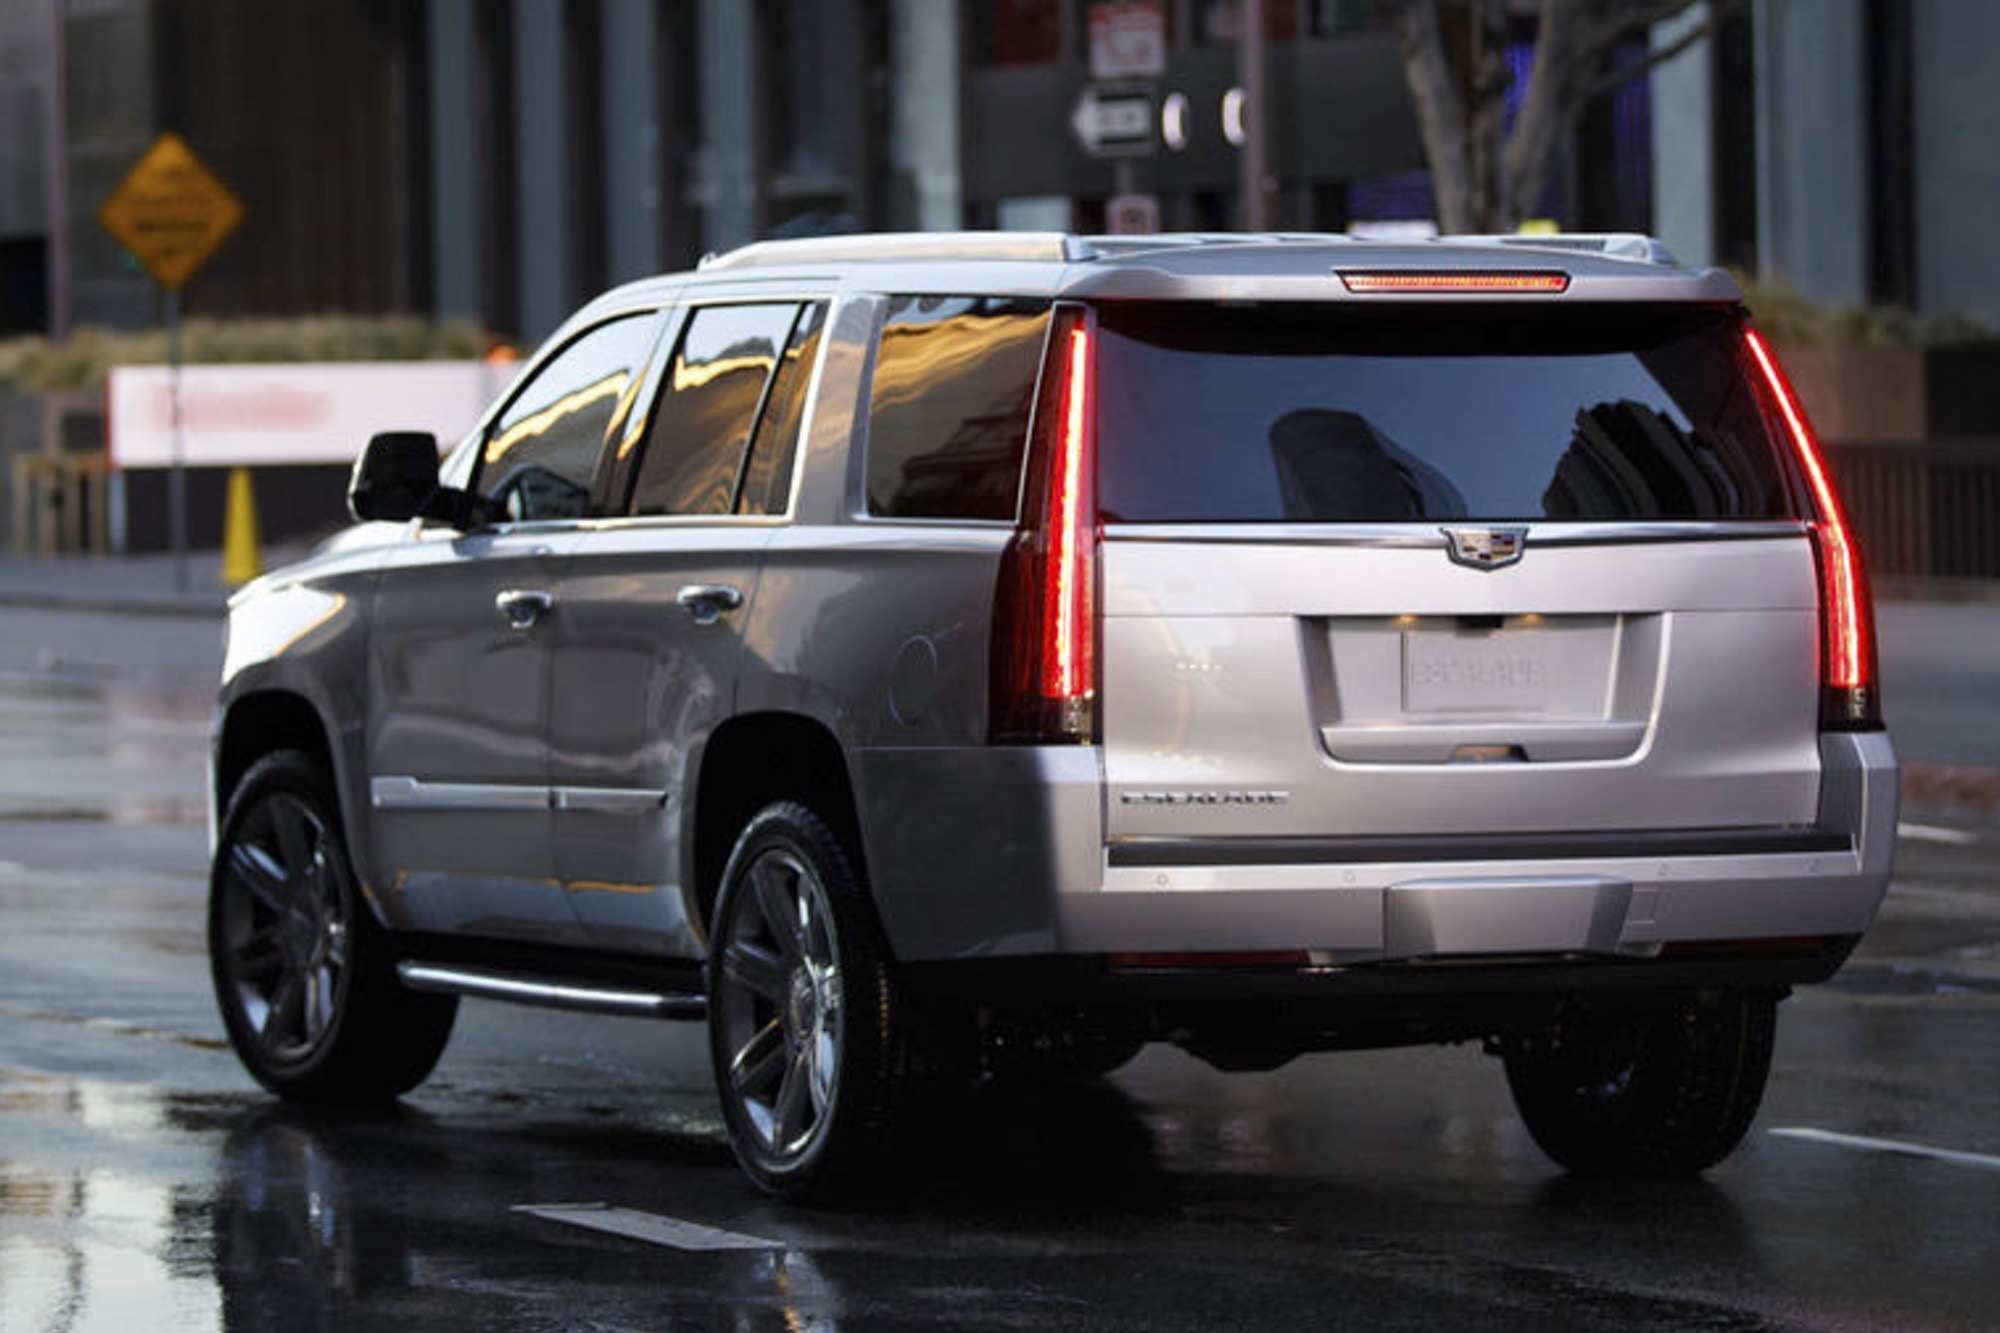 68 The Best Cadillac Escalade New Body Style 2020 Release Date